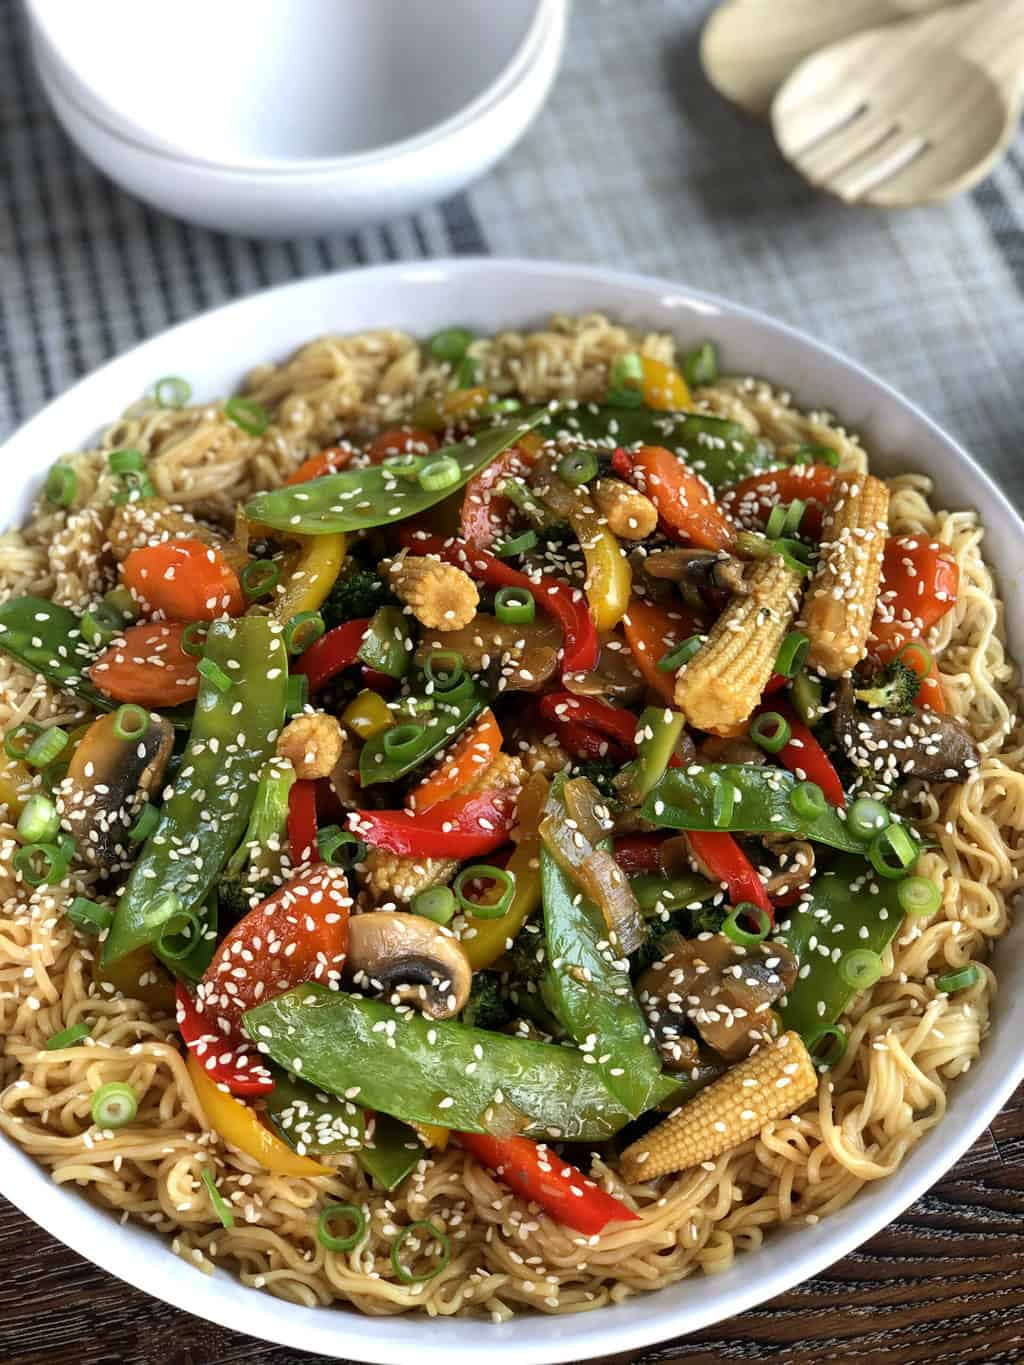 Large white serving bowl with egg noodles and vegetarian stir fried vegetables